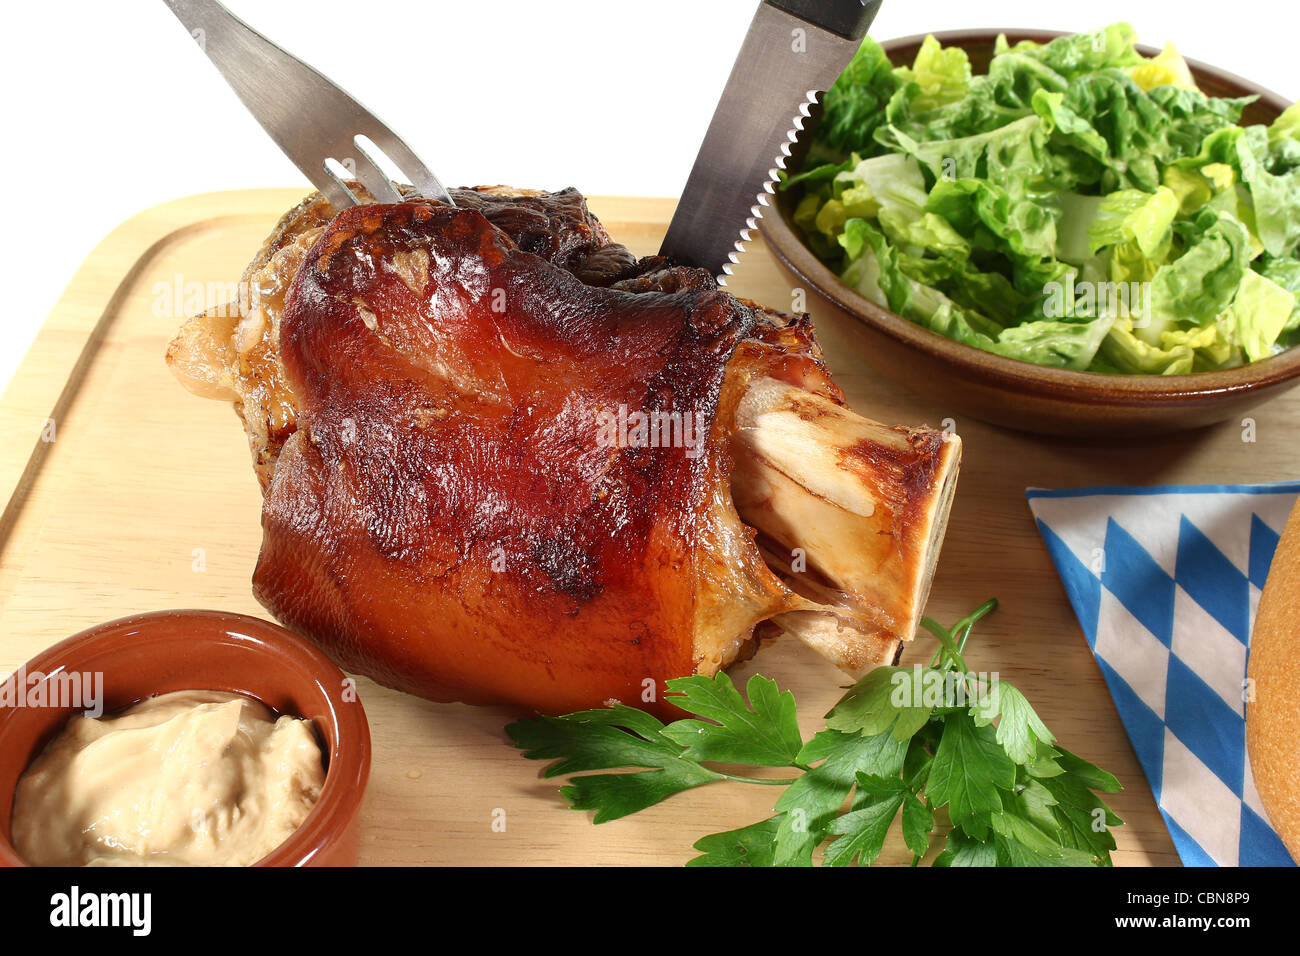 Pork hock with mustard, lettuce and parsley on a board with cutlery - Stock Image